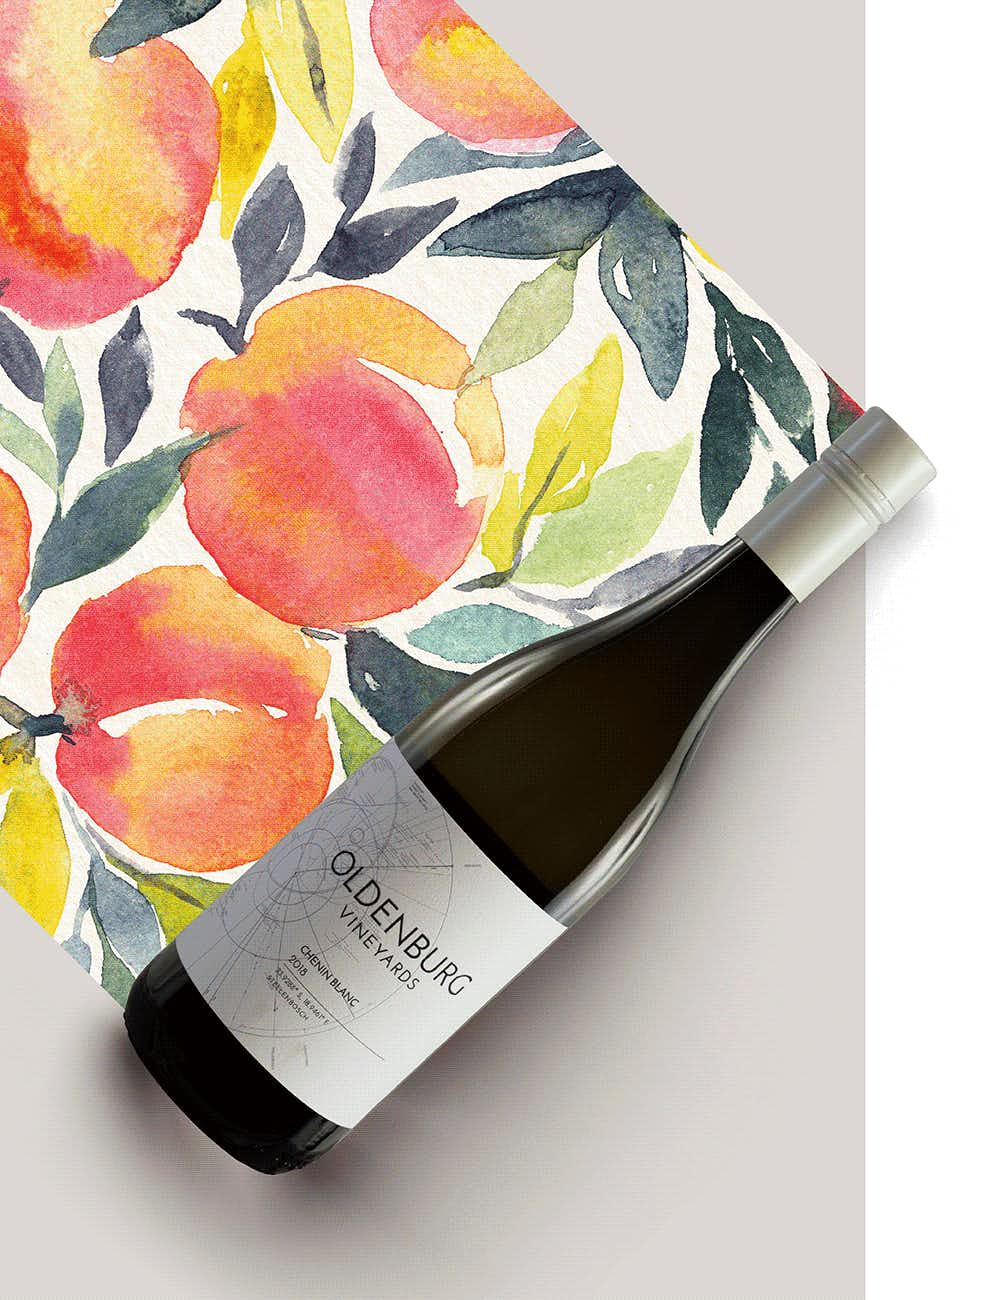 Oldenburg Vineyards Chenin Blanc 2018